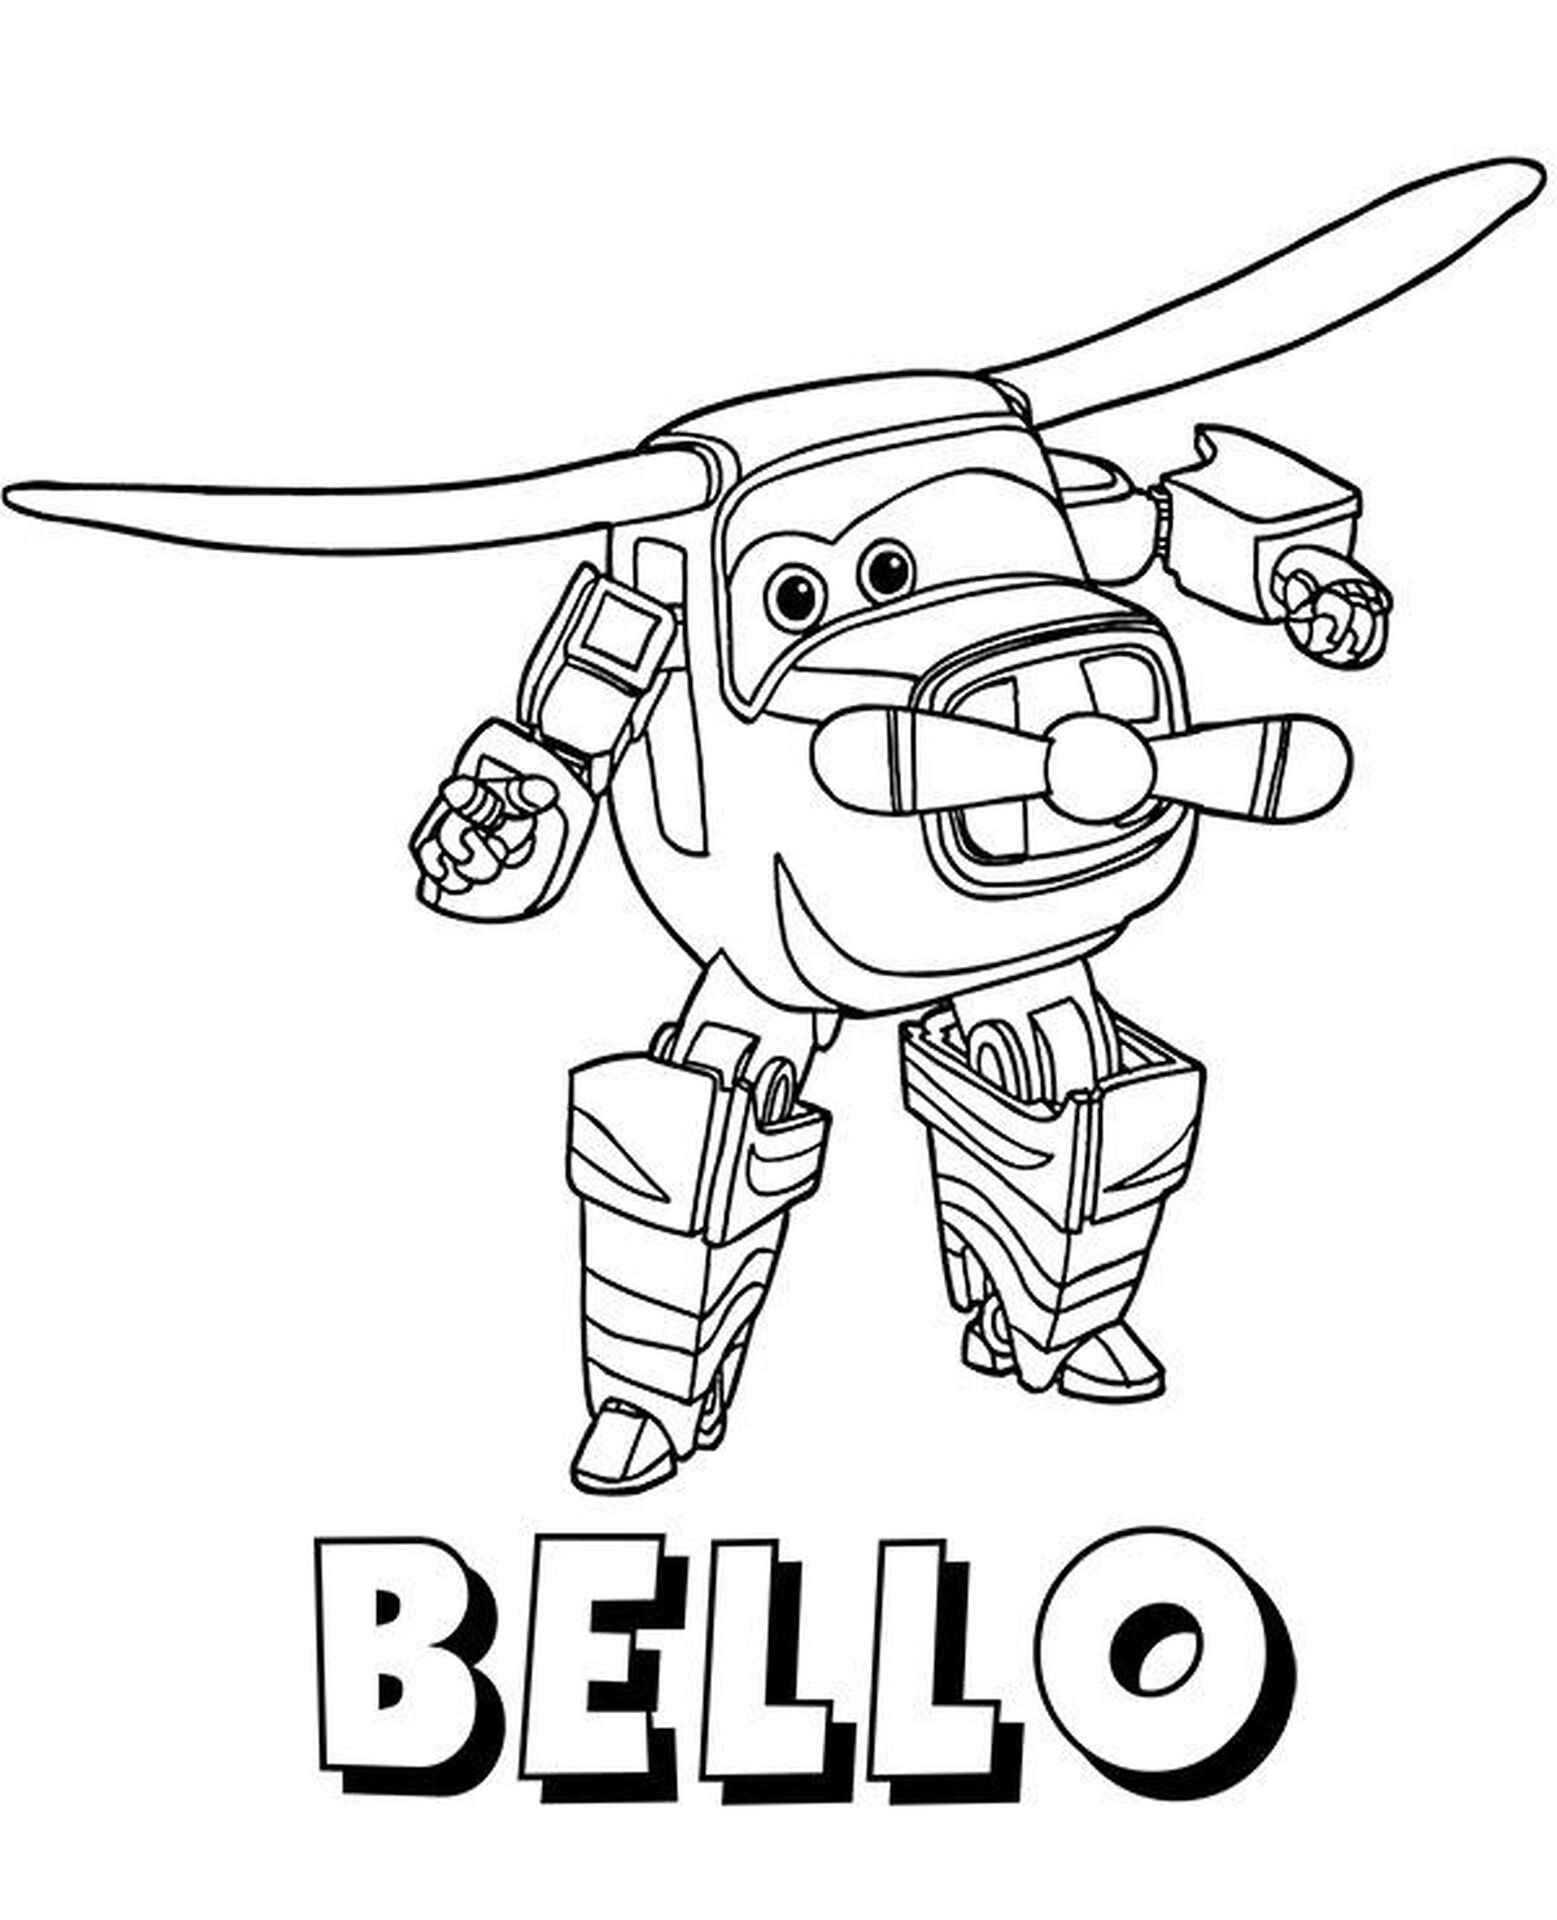 Bello Coloring Page